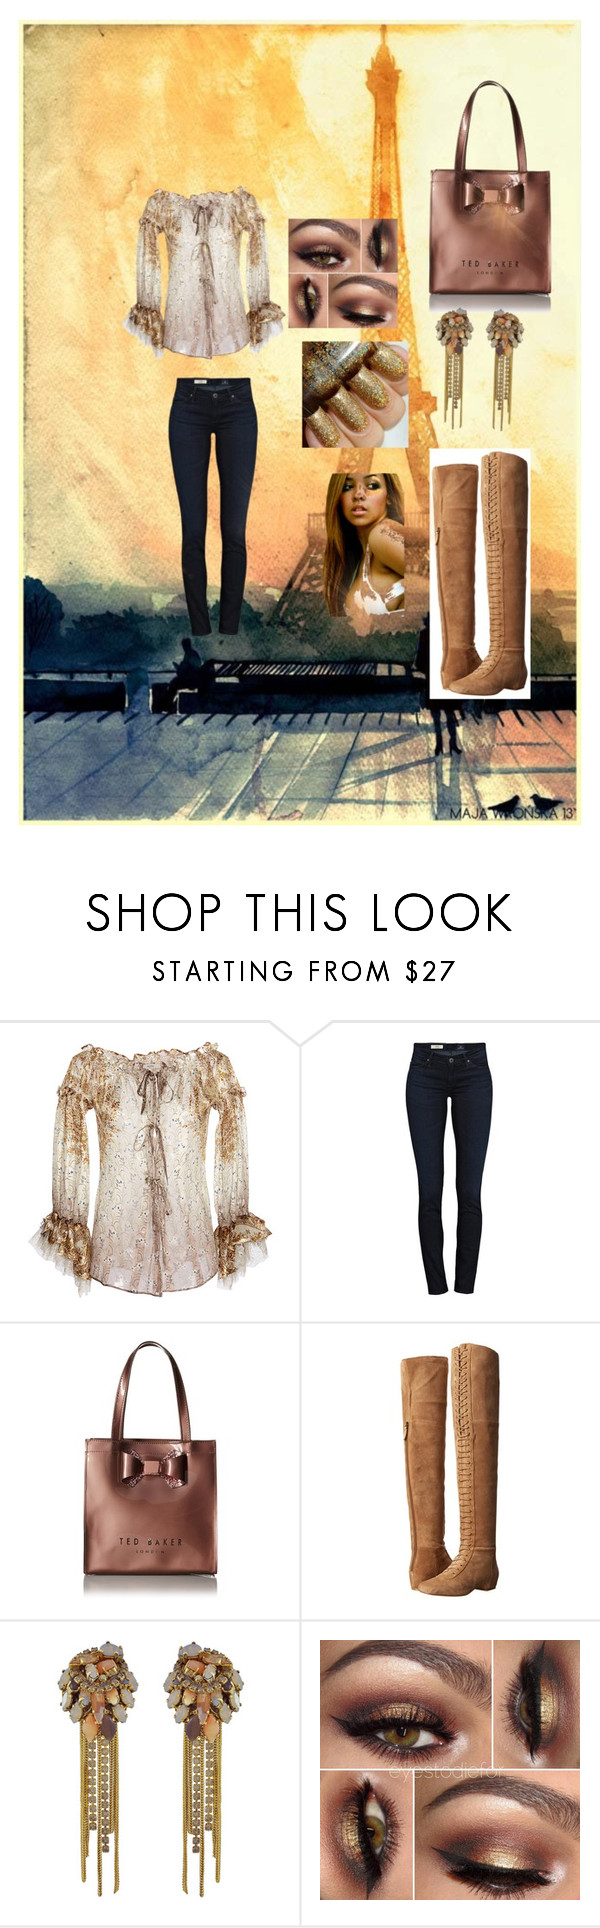 """"""""""" by vjwilkerson ❤ liked on Polyvore featuring Etro, AG Adriano Goldschmied, Ted Baker, Nine West, Erickson Beamon, women's clothing, women's fashion, women, female and woman"""